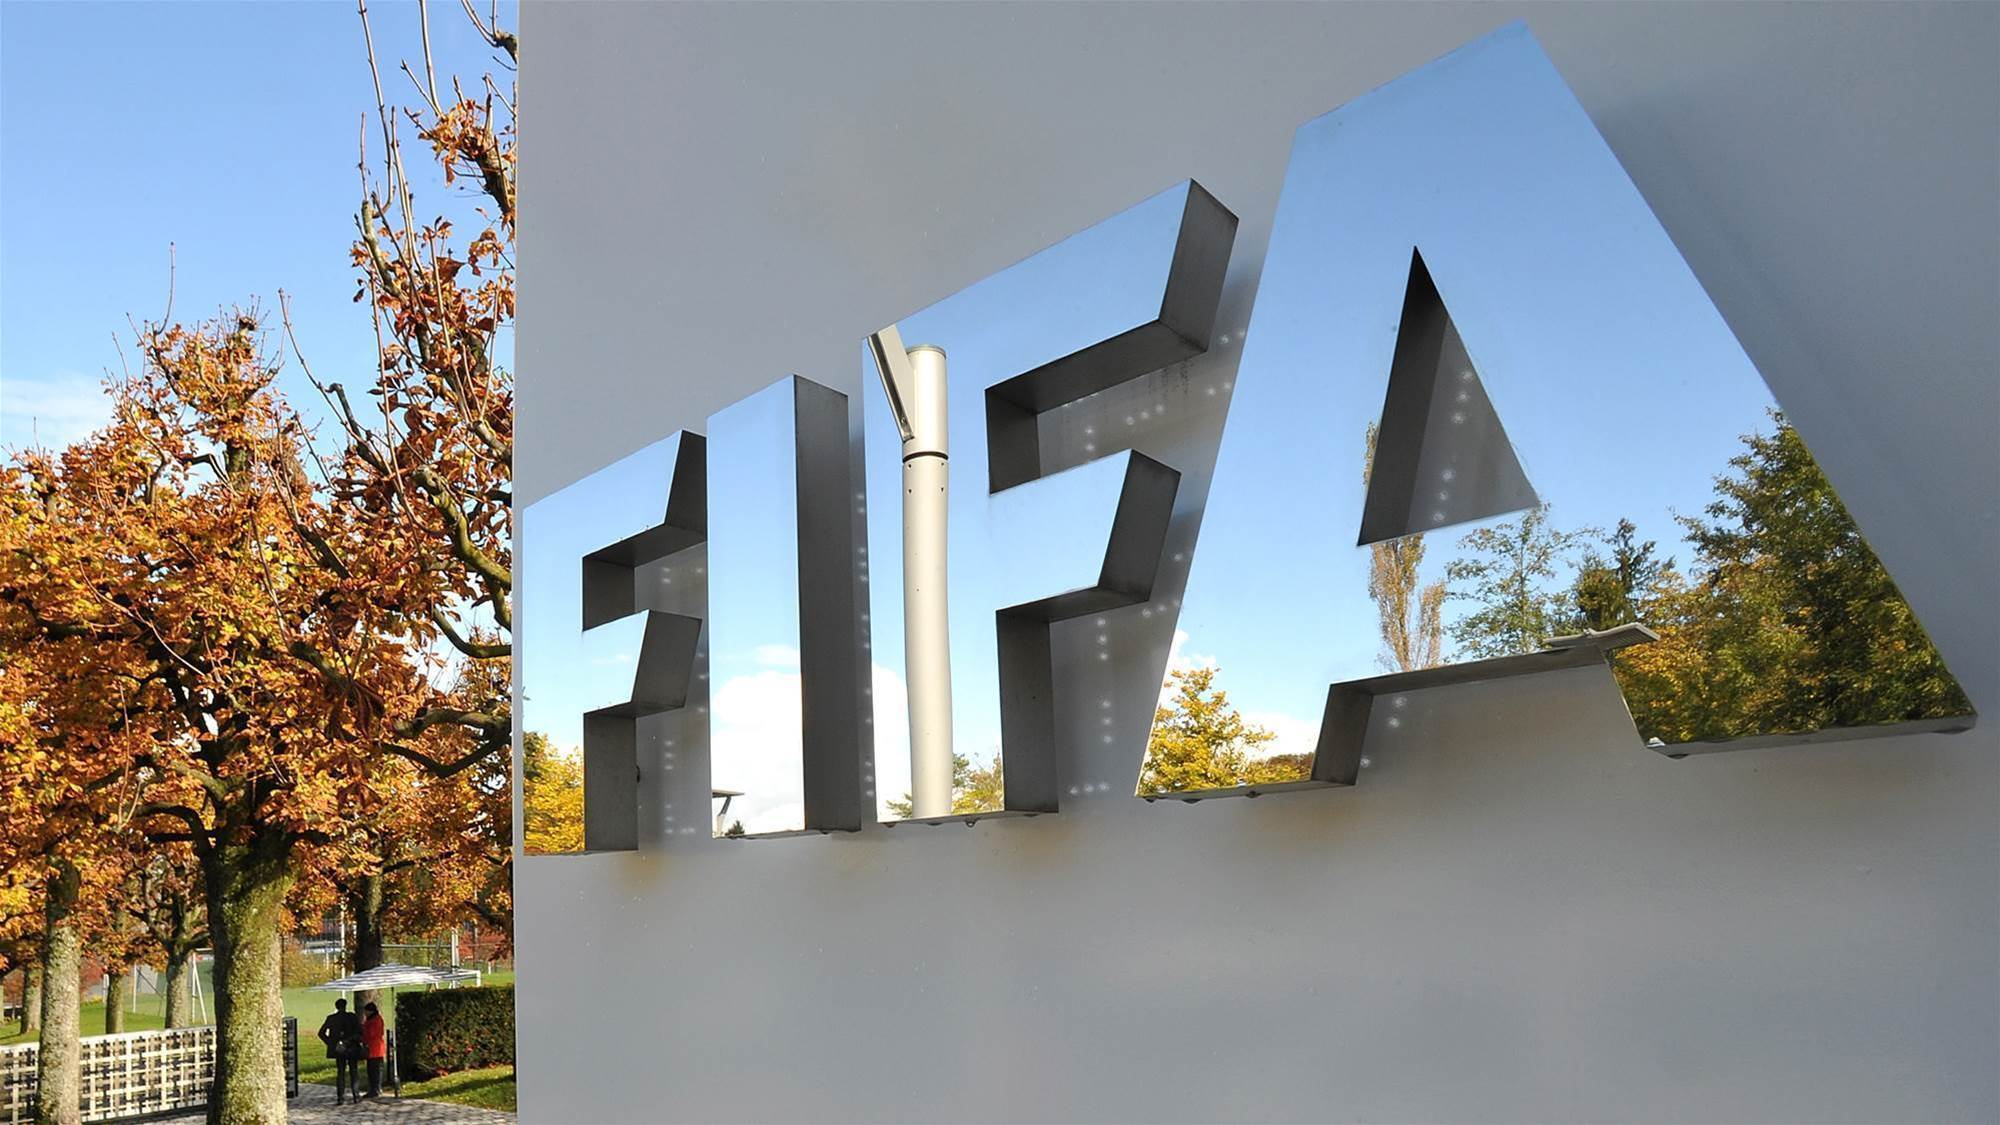 FIFA to investigate abuse claims from Afghanistan national team